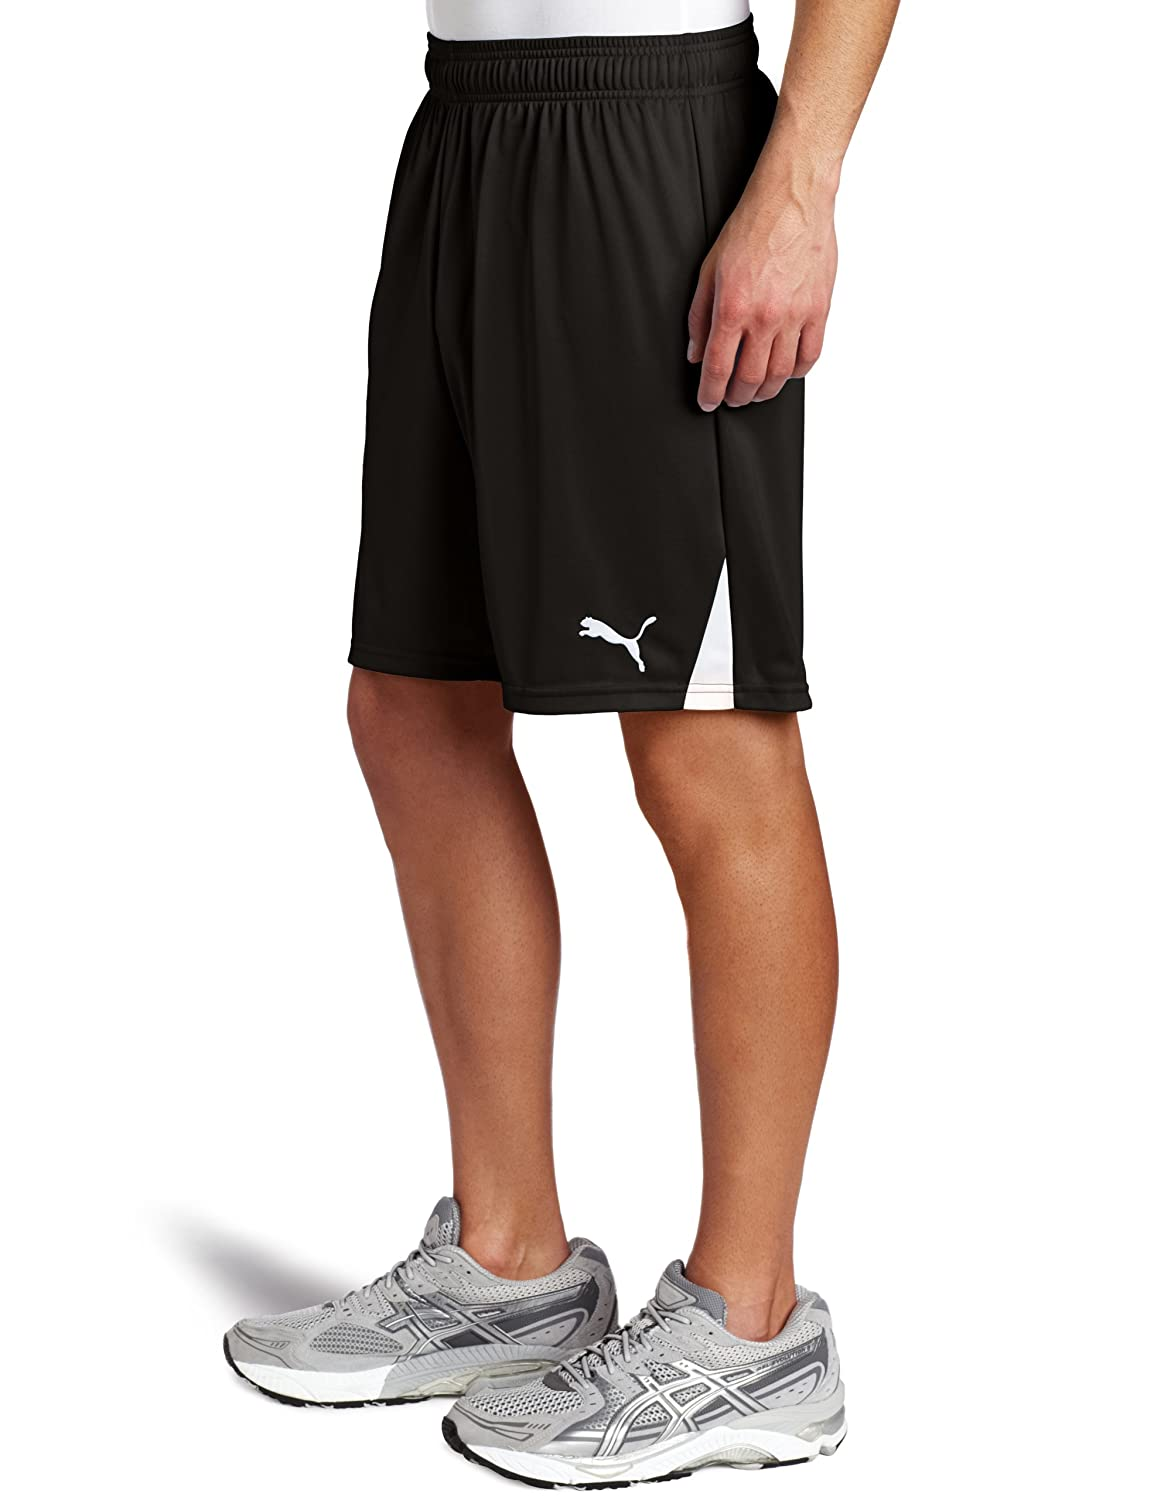 dec28ca9b419 Amazon.com  Puma Youth s Team Shorts without Inner Slip  Sports   Outdoors